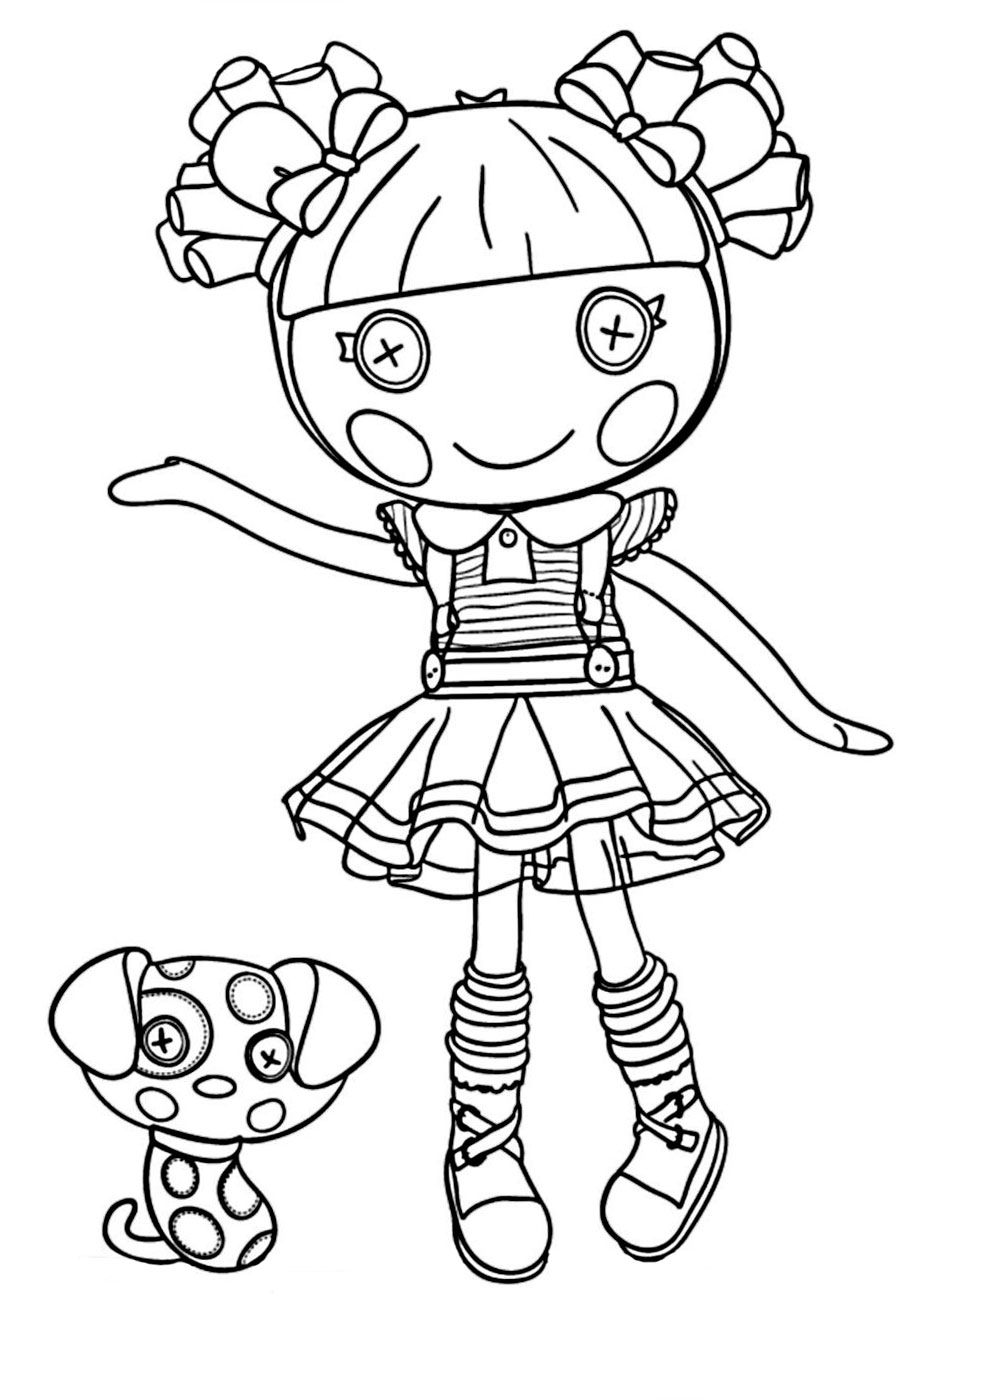 how to draw a lalaloopsy doll lalaloopsy coloring pages stained glass patterns how a draw lalaloopsy to doll